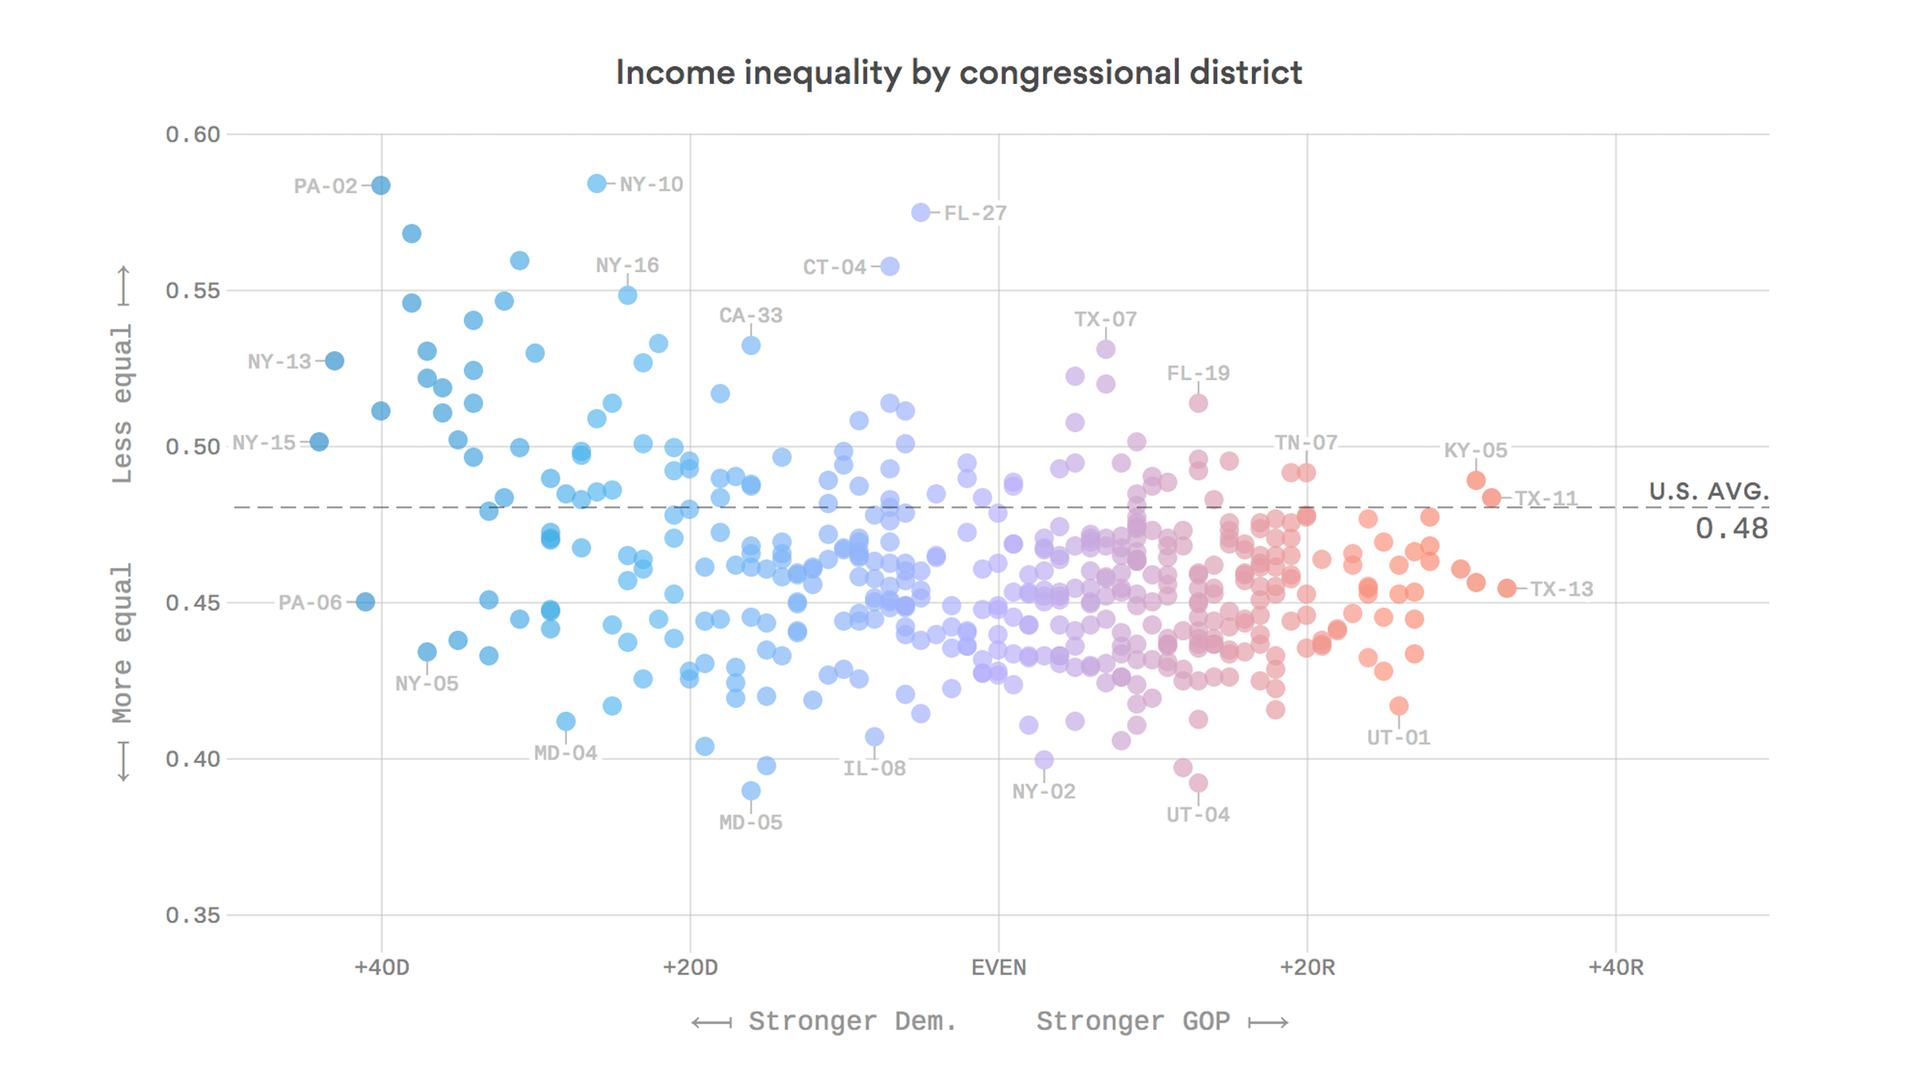 Blue districts have more income inequality than red ones